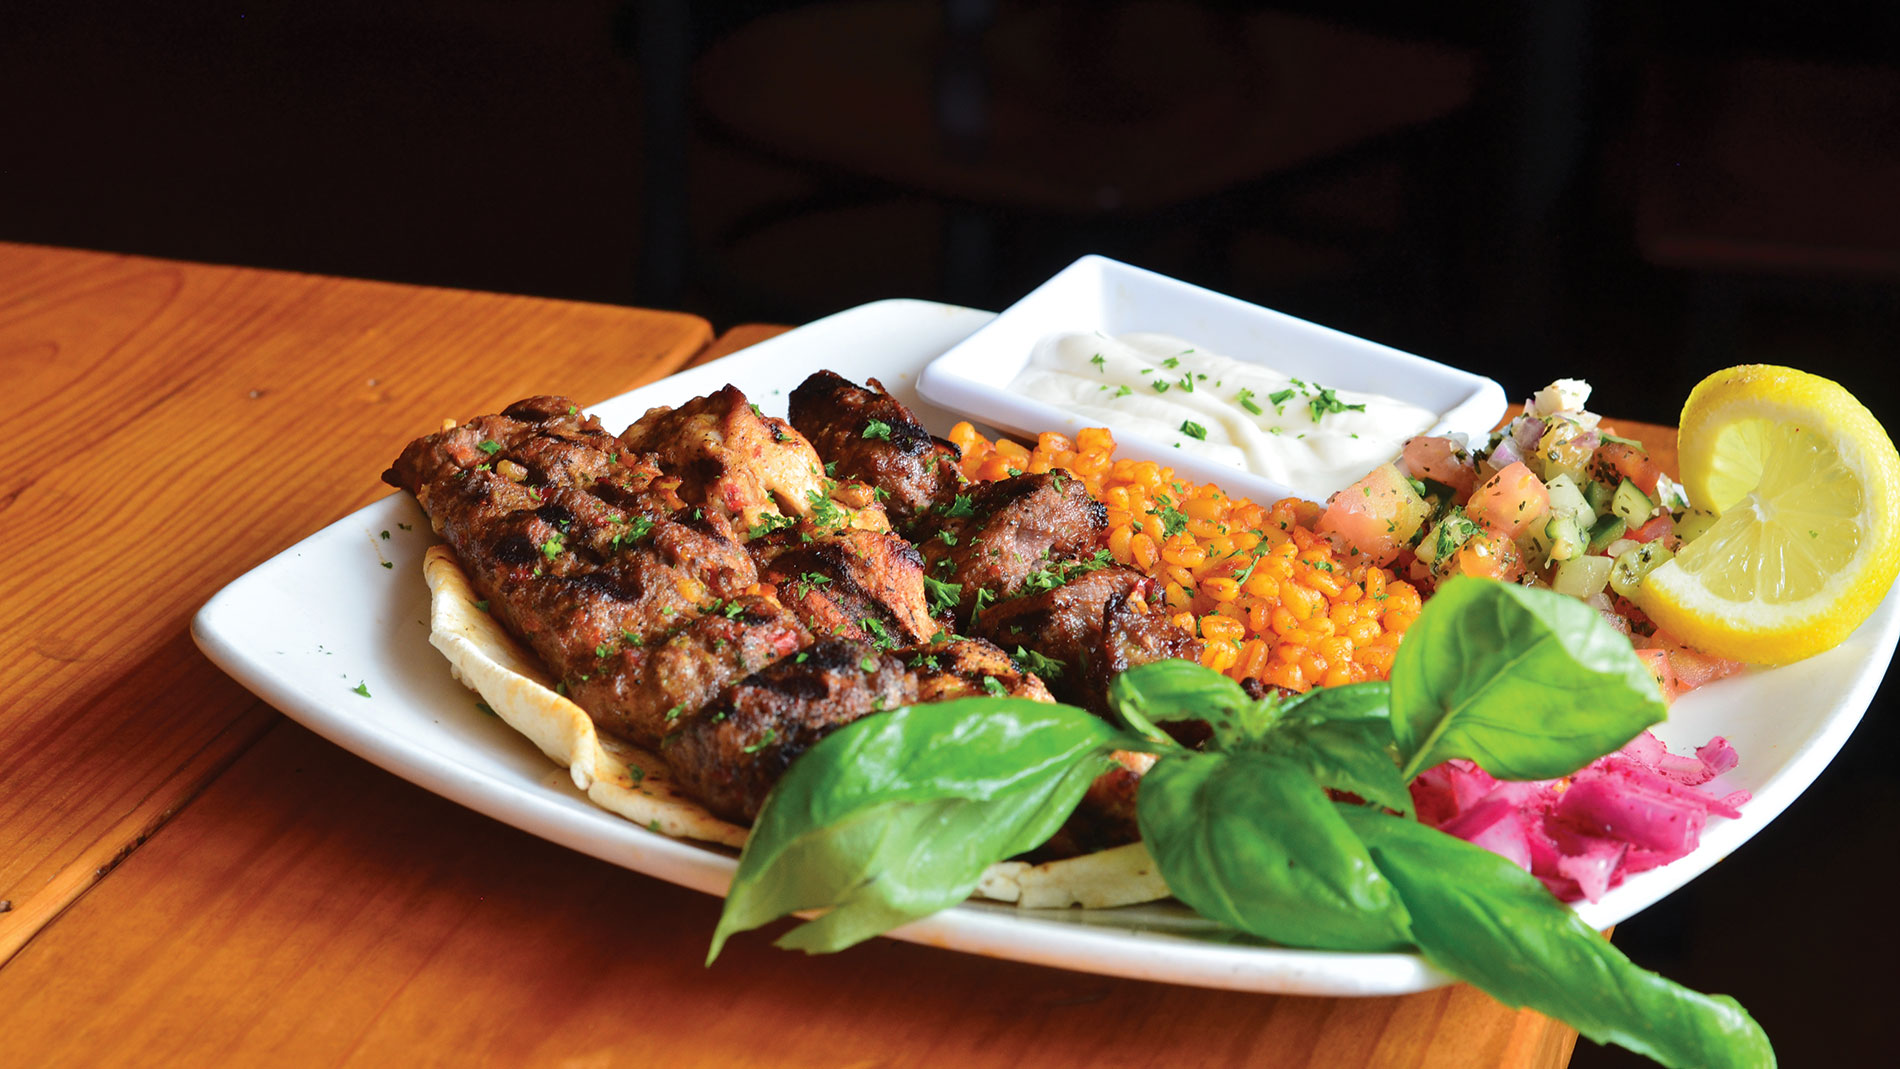 mixed grill at afandi sweets & cafe in st. louis